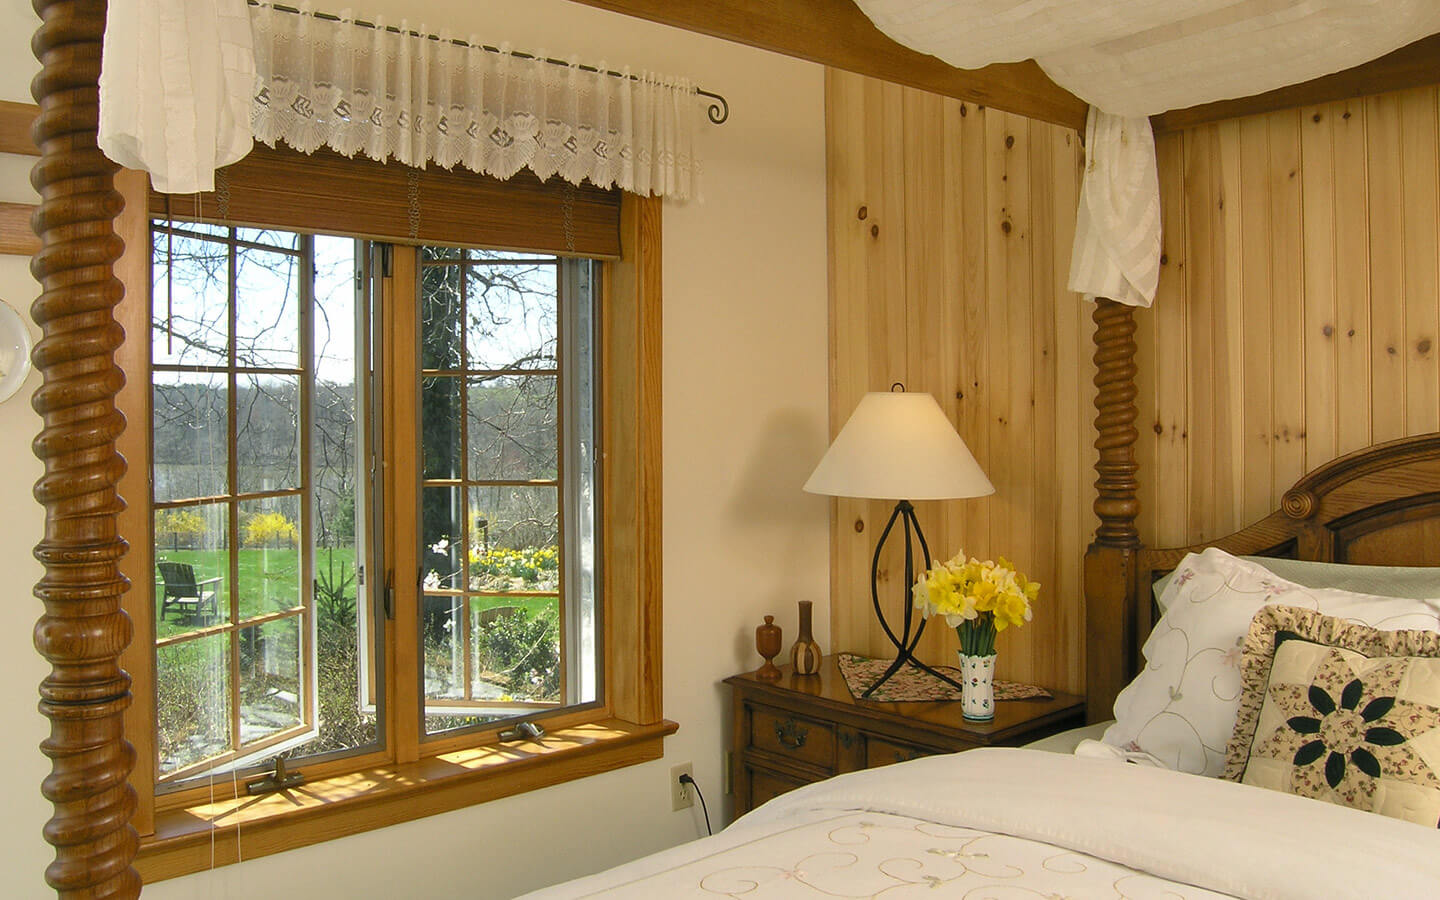 San Bernadino Room four poster bed and window view at our Lancaster County PA B&B